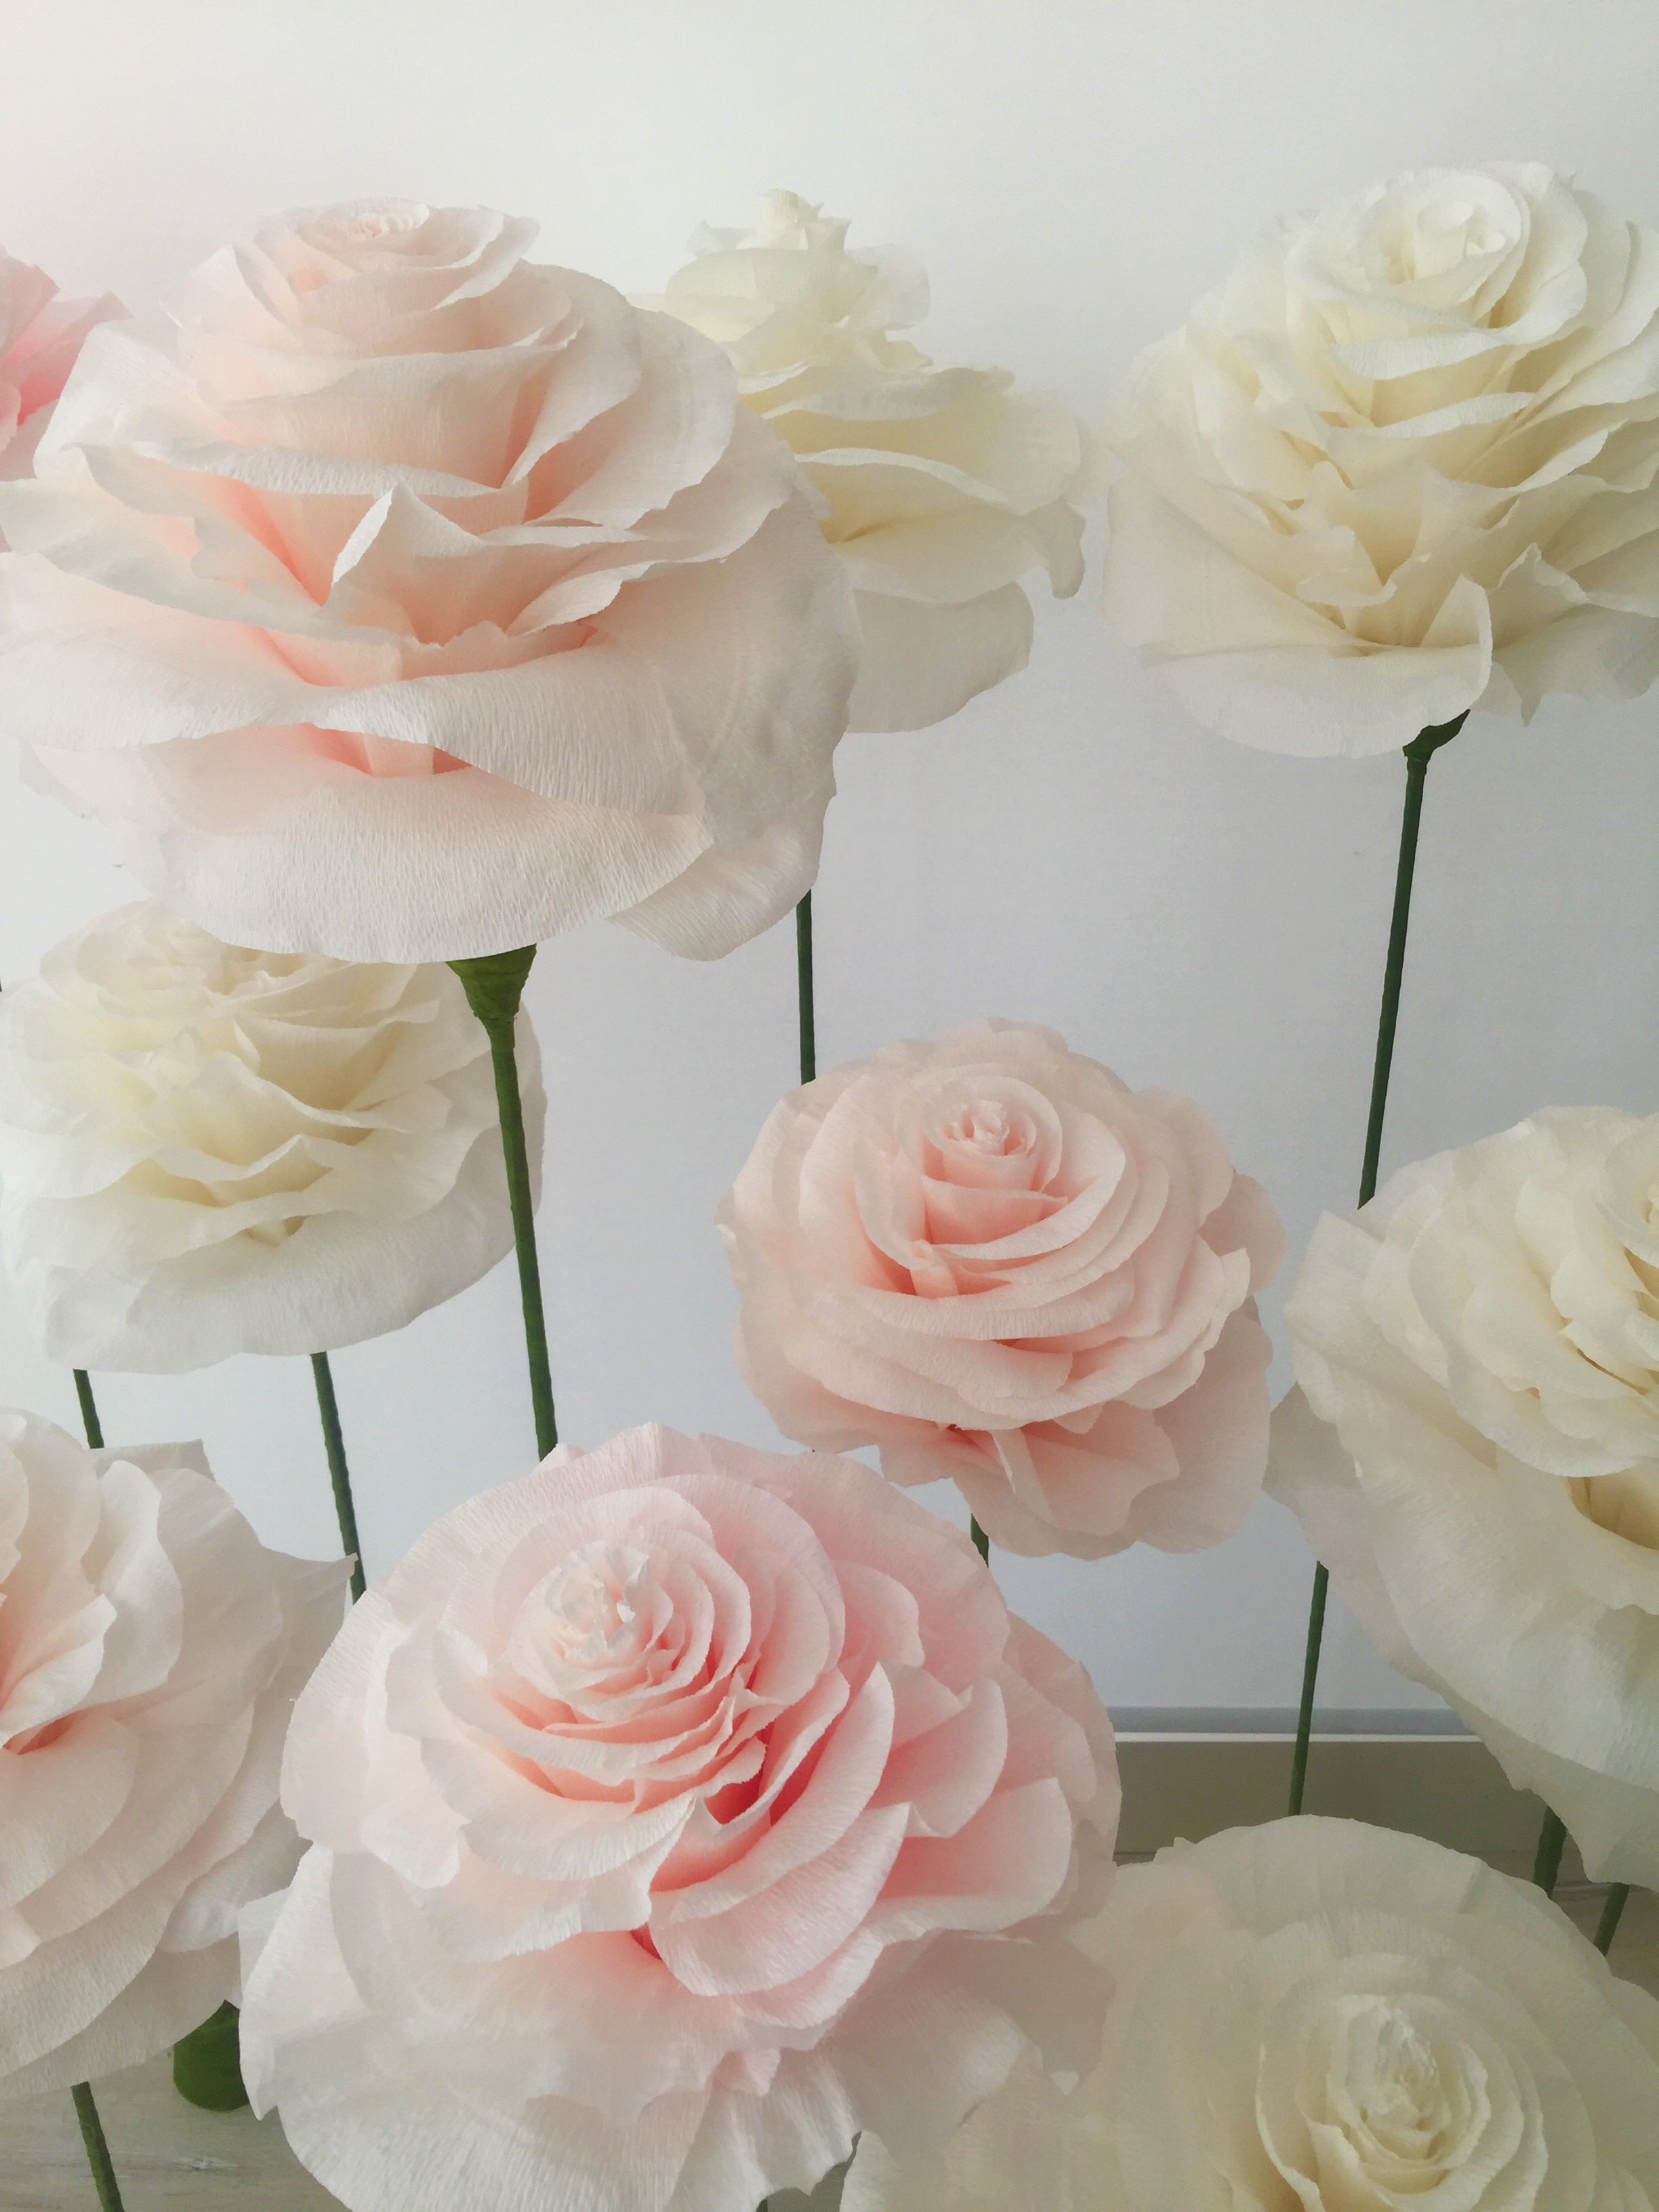 Paper Flowers The Latest Trend In Wedding Decoration Katya Yevich